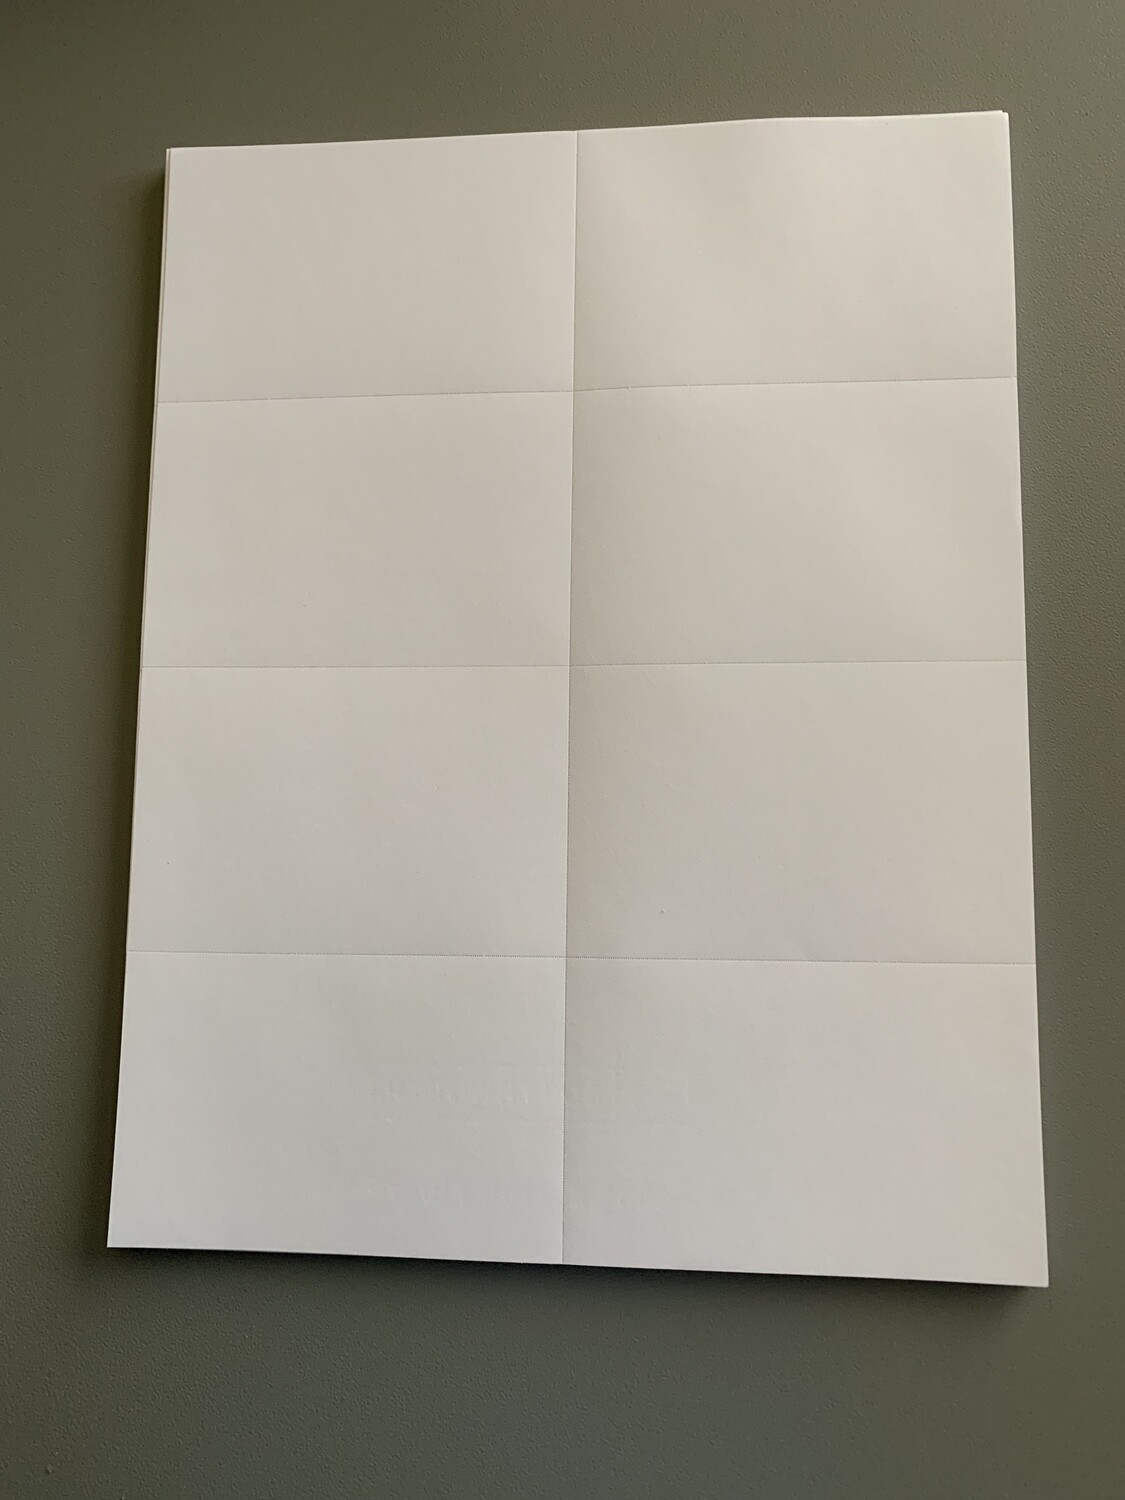 """Cotton Paper 8.5"""" x 11"""" (Plain or Perforated for Labels)"""